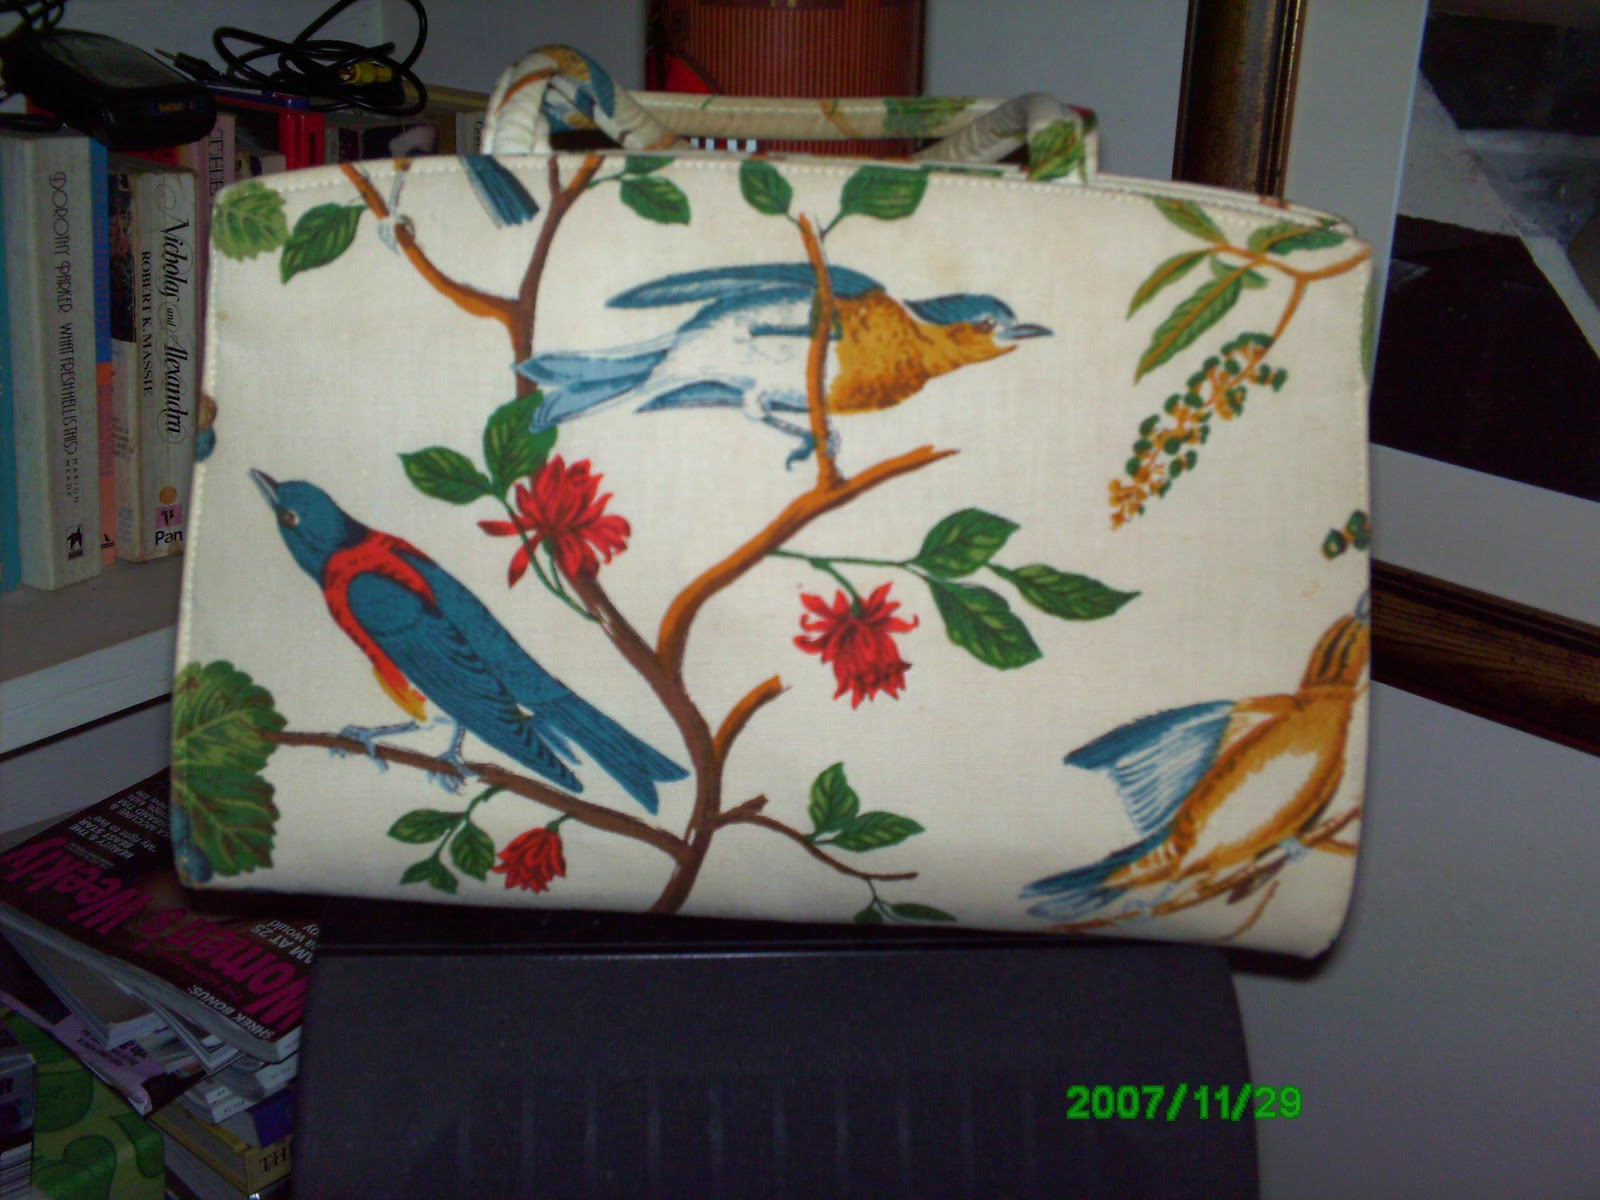 I Have A Small Collection Of Margaret Smith Gardiner Maine Handbags This Is One Them Will Be Posting More Later Bit About Her